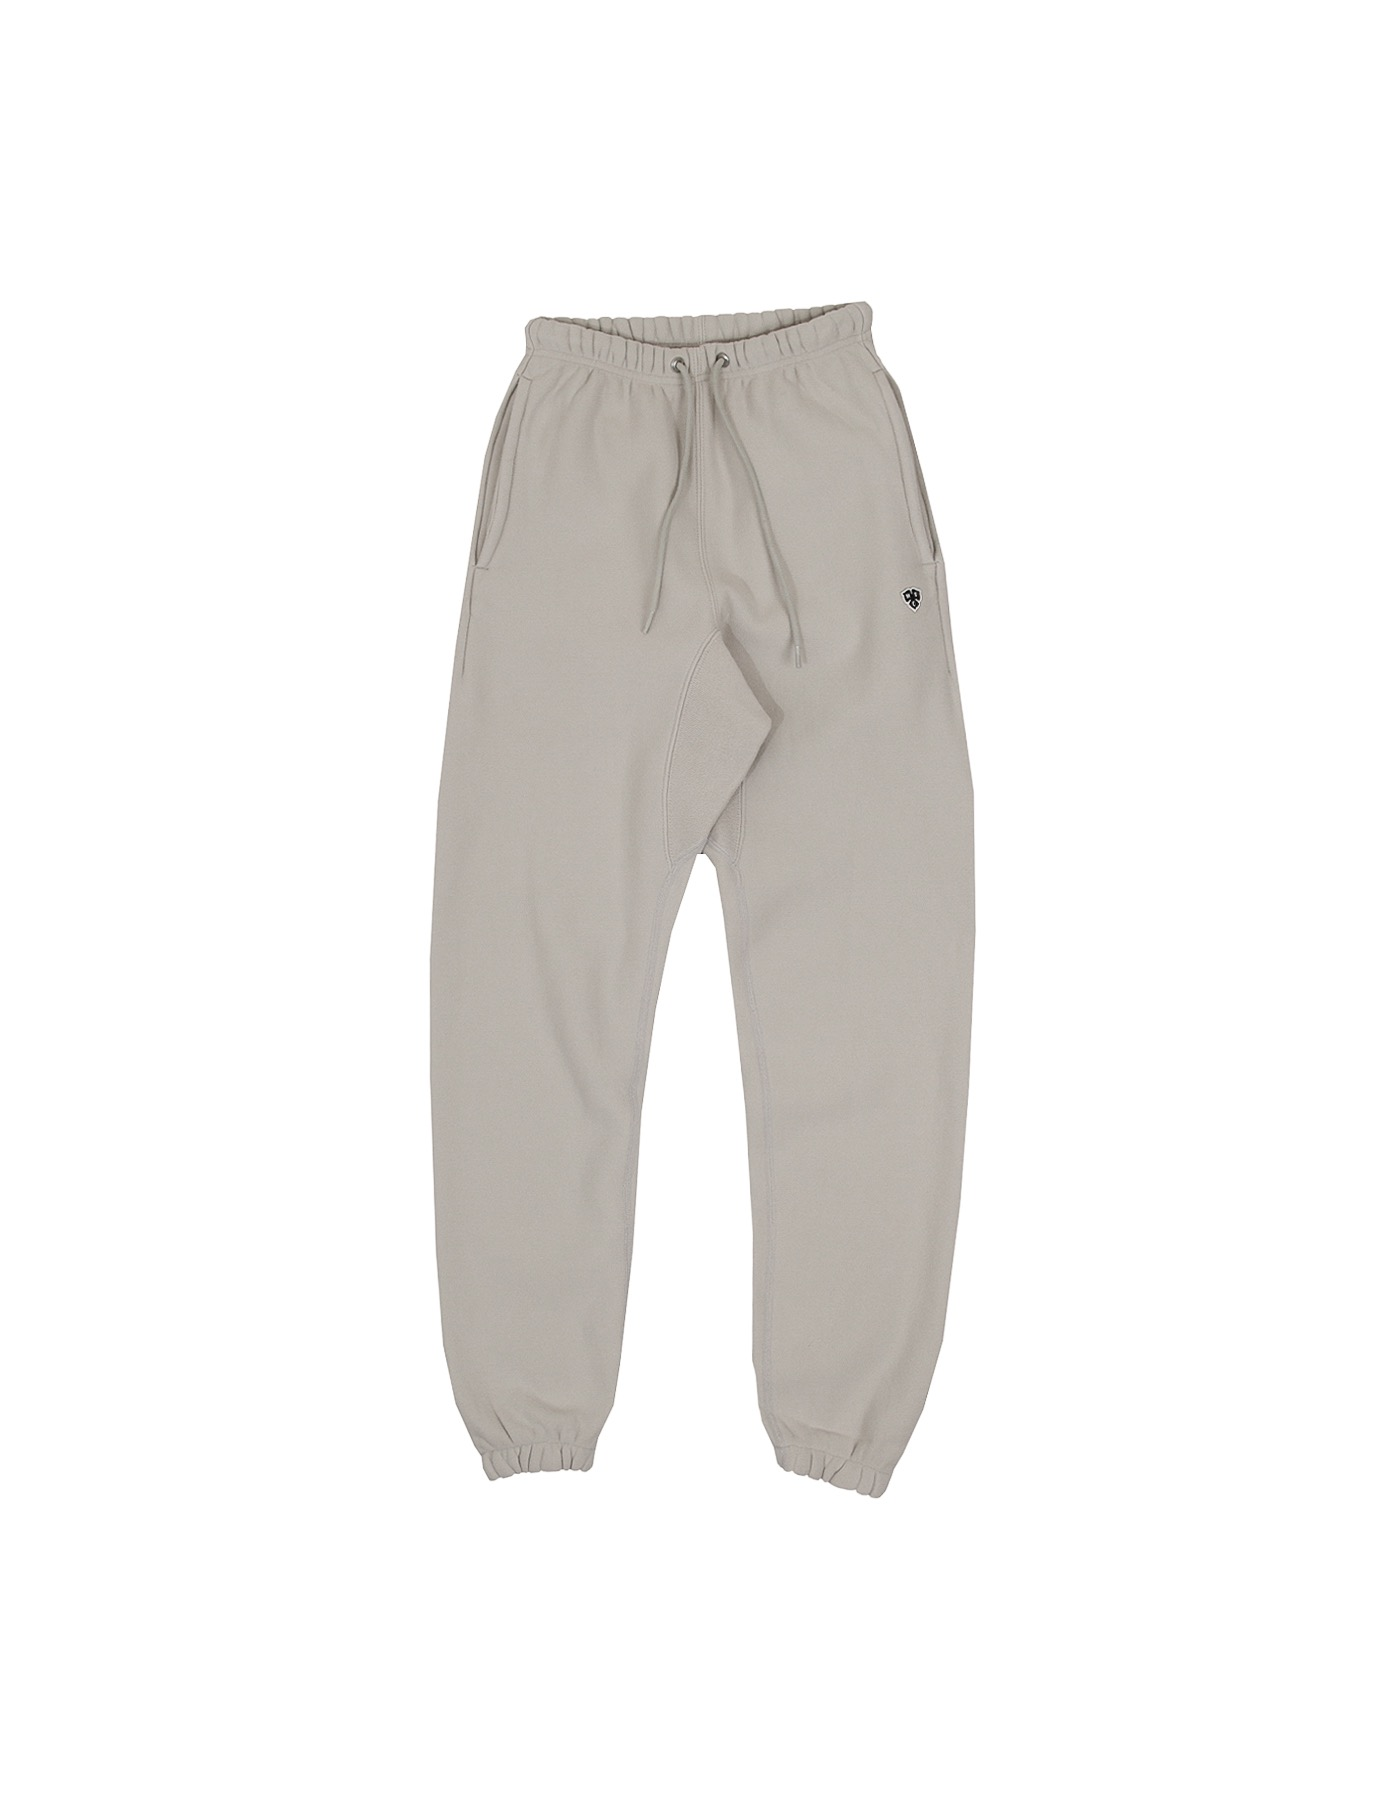 334 REVERSE FLEECE SWEATPANTS (SLIM-FIT) / LIGHT JADE